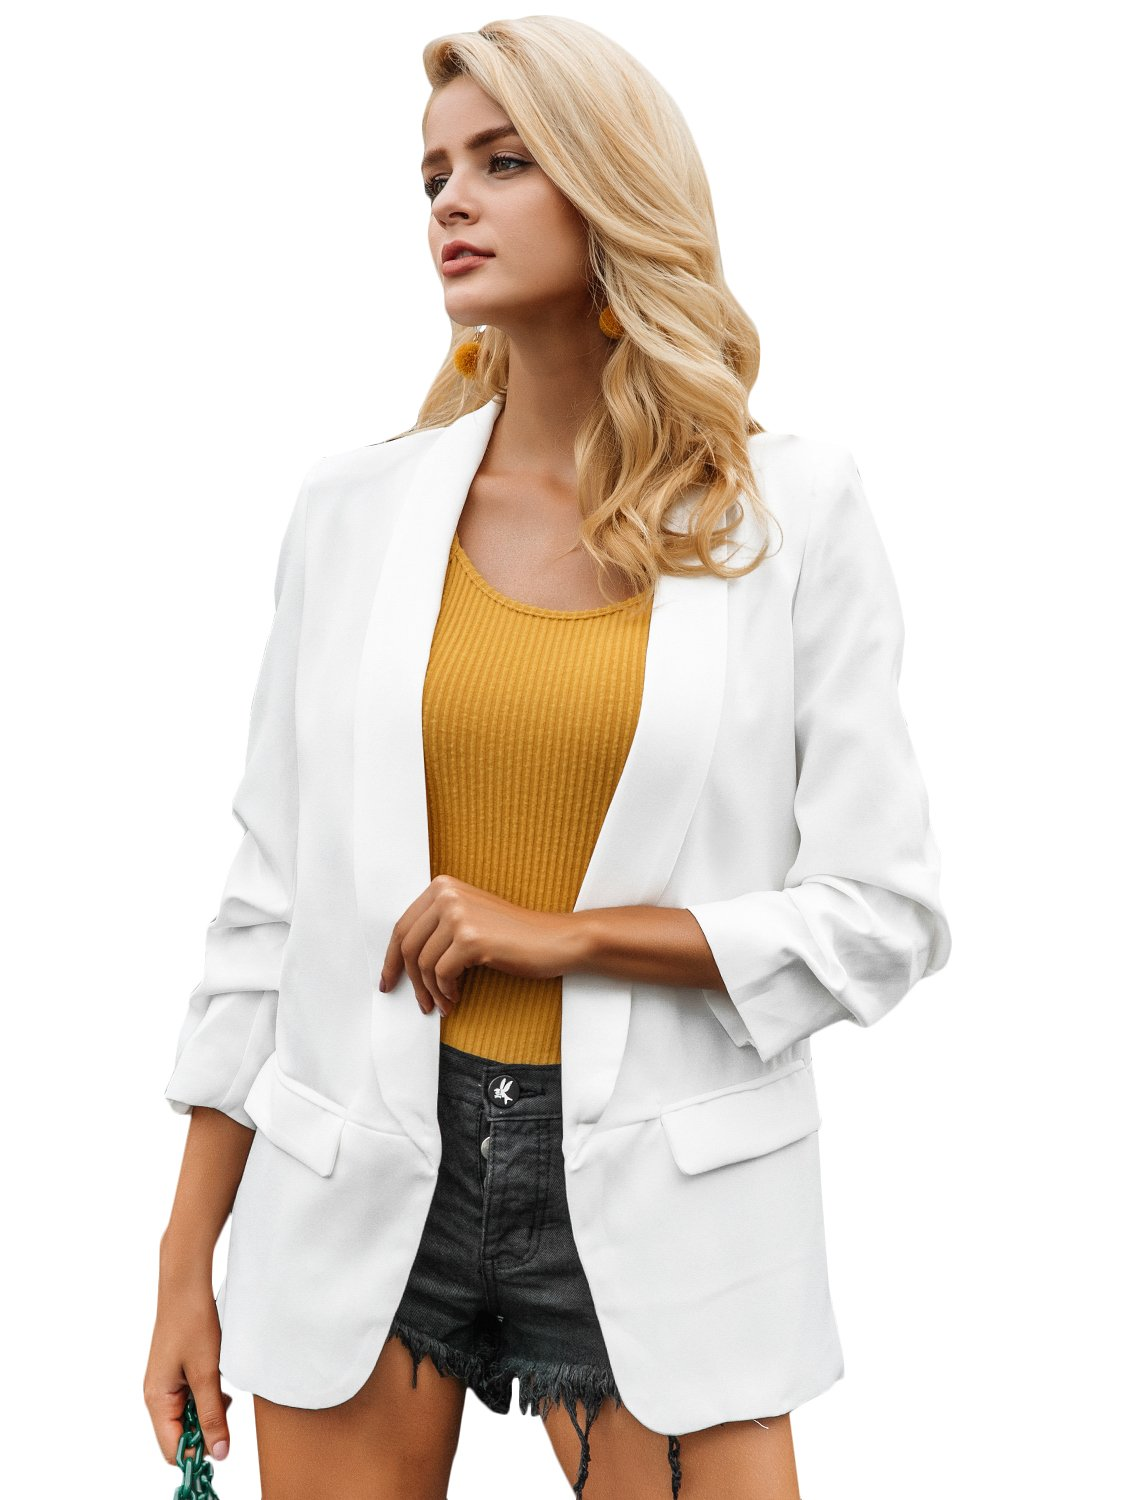 Simplee Women's Fashion 3/4 Ruched Sleeve Open Front Work Office Blazer Jacket